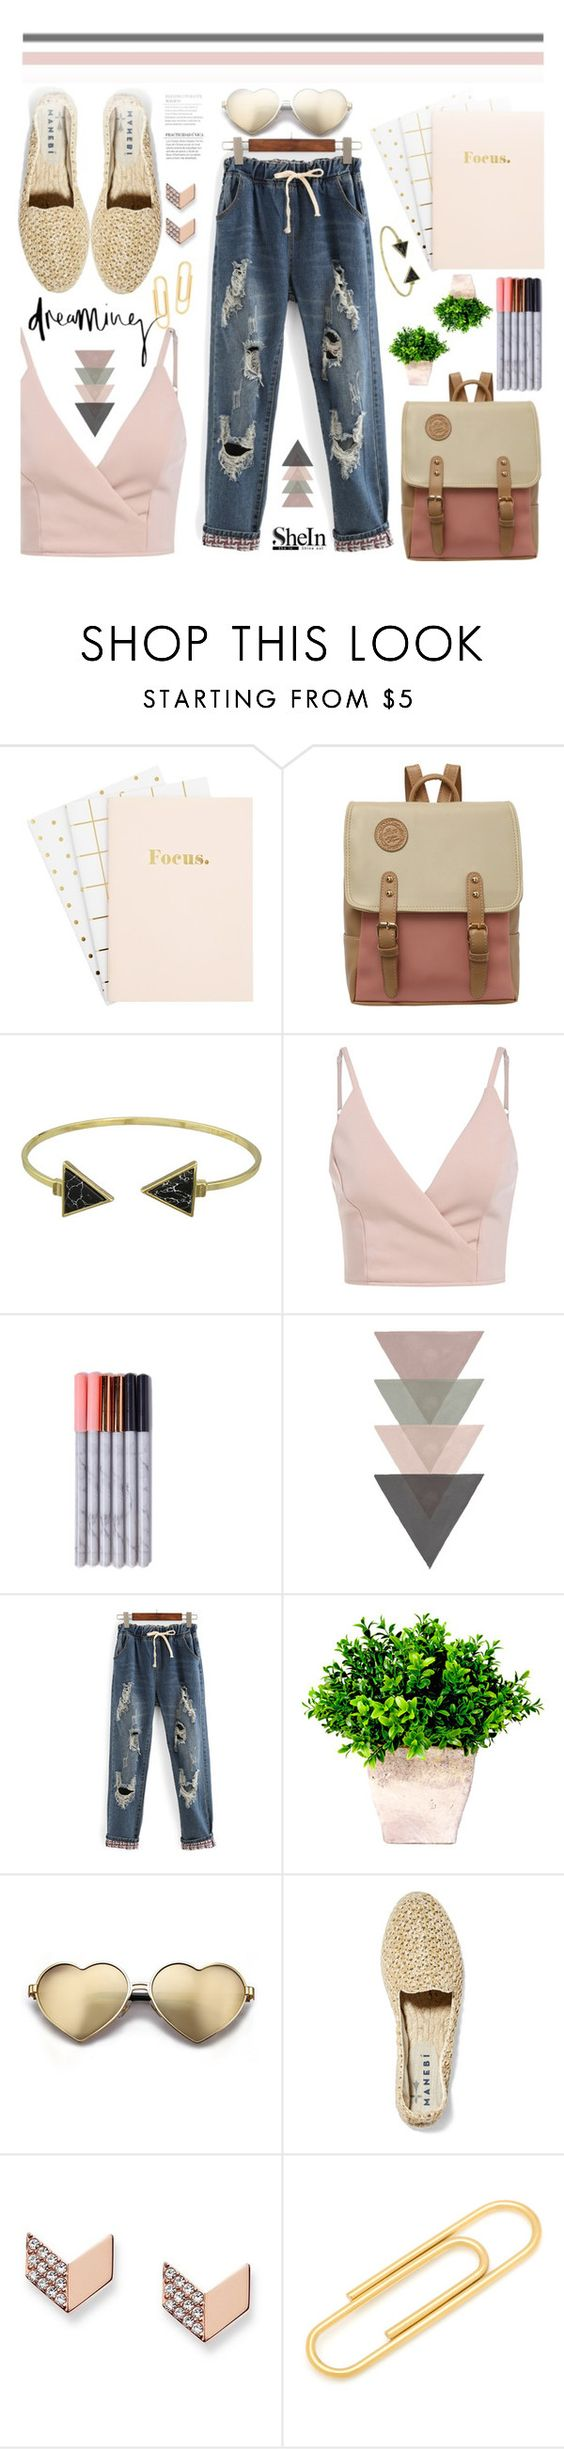 """""""Shine In!"""" by wannanna ❤ liked on Polyvore featuring WithChic, Wildfox, Manebí, FOSSIL and Ox & Bull Trading Co."""